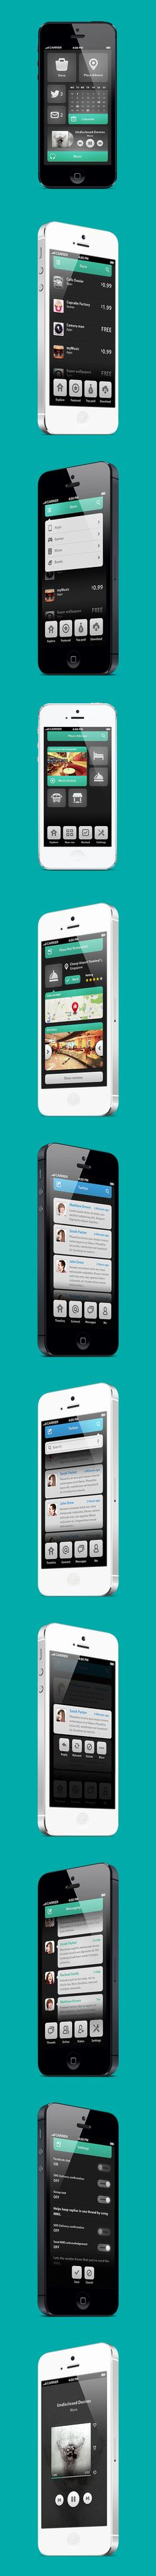 """Phone UI Retina - Natalie, via Behance *** """" The wonderful Design is what a user could ever want, How about a Sexy one, Strong and Cute, Smart and Gorgeous, as silky as a woman, We're introducing the most sexiest User Interface Design ever, meet Natalie and tell us what is sexy. """" by Ismail MESBAH"""